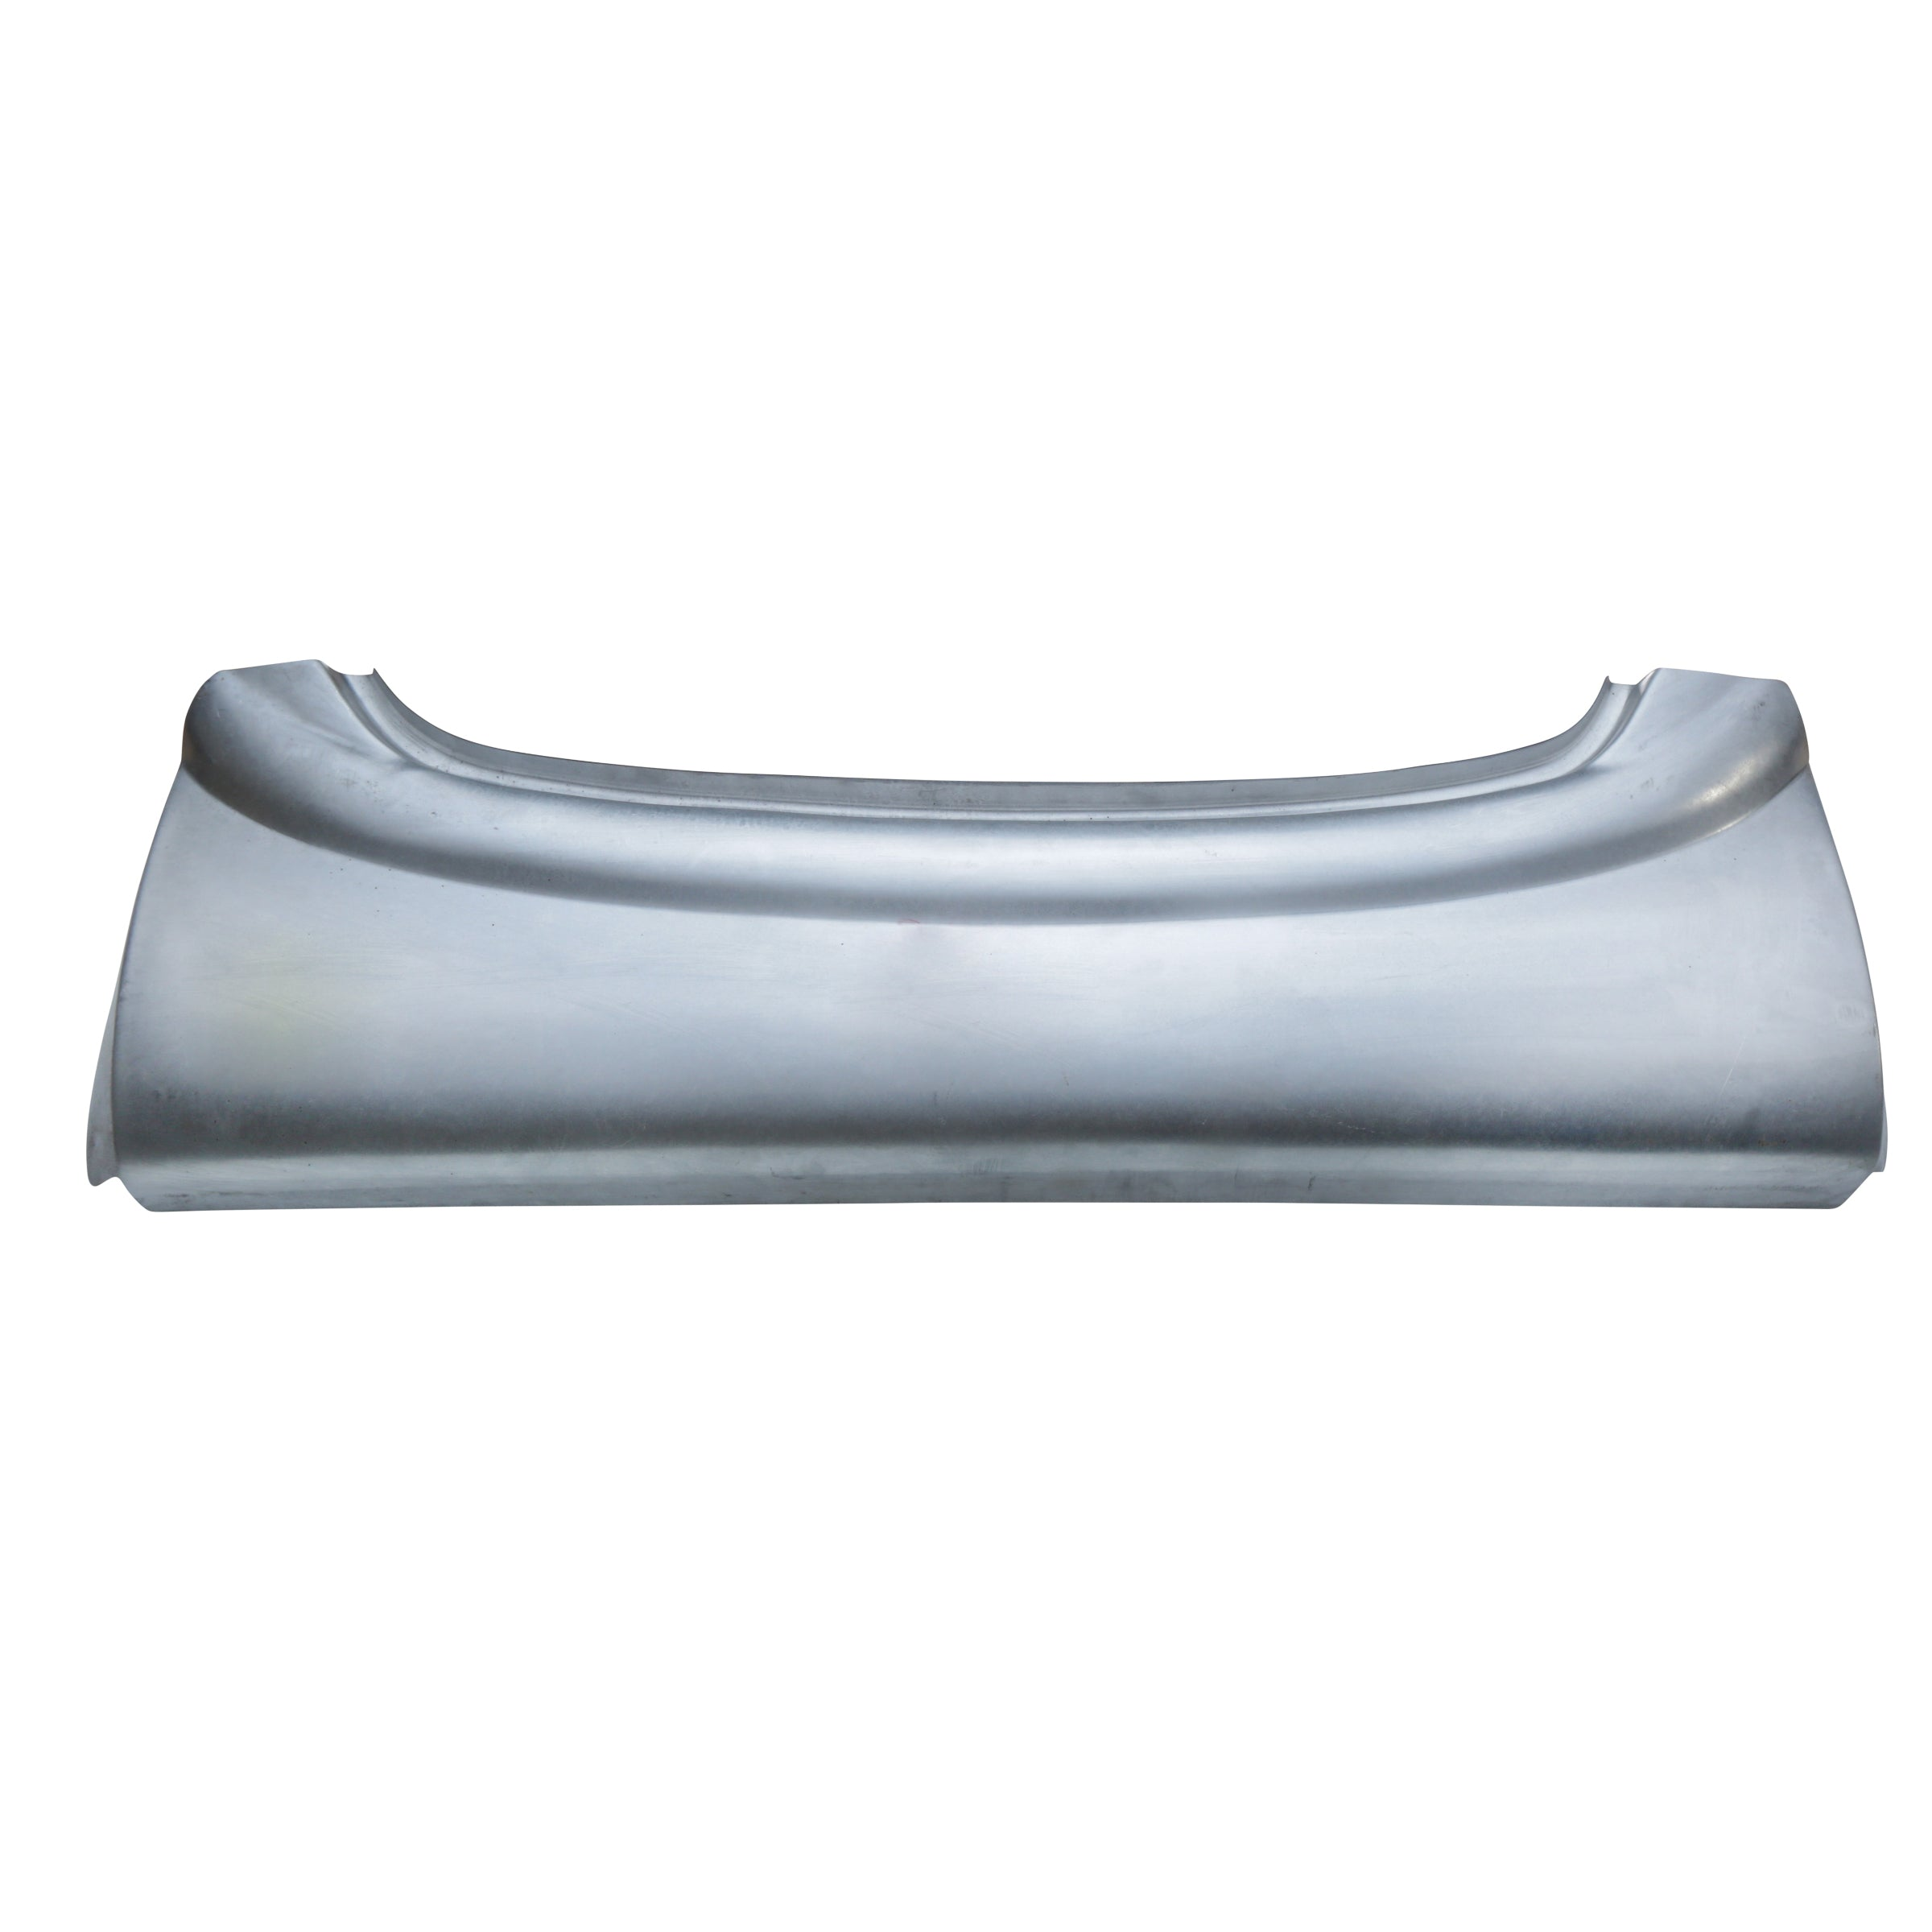 Below Trunk Lid Panel (Tail Pan) • 1937-38 Ford Coupe, Roadster, & Cabriolet